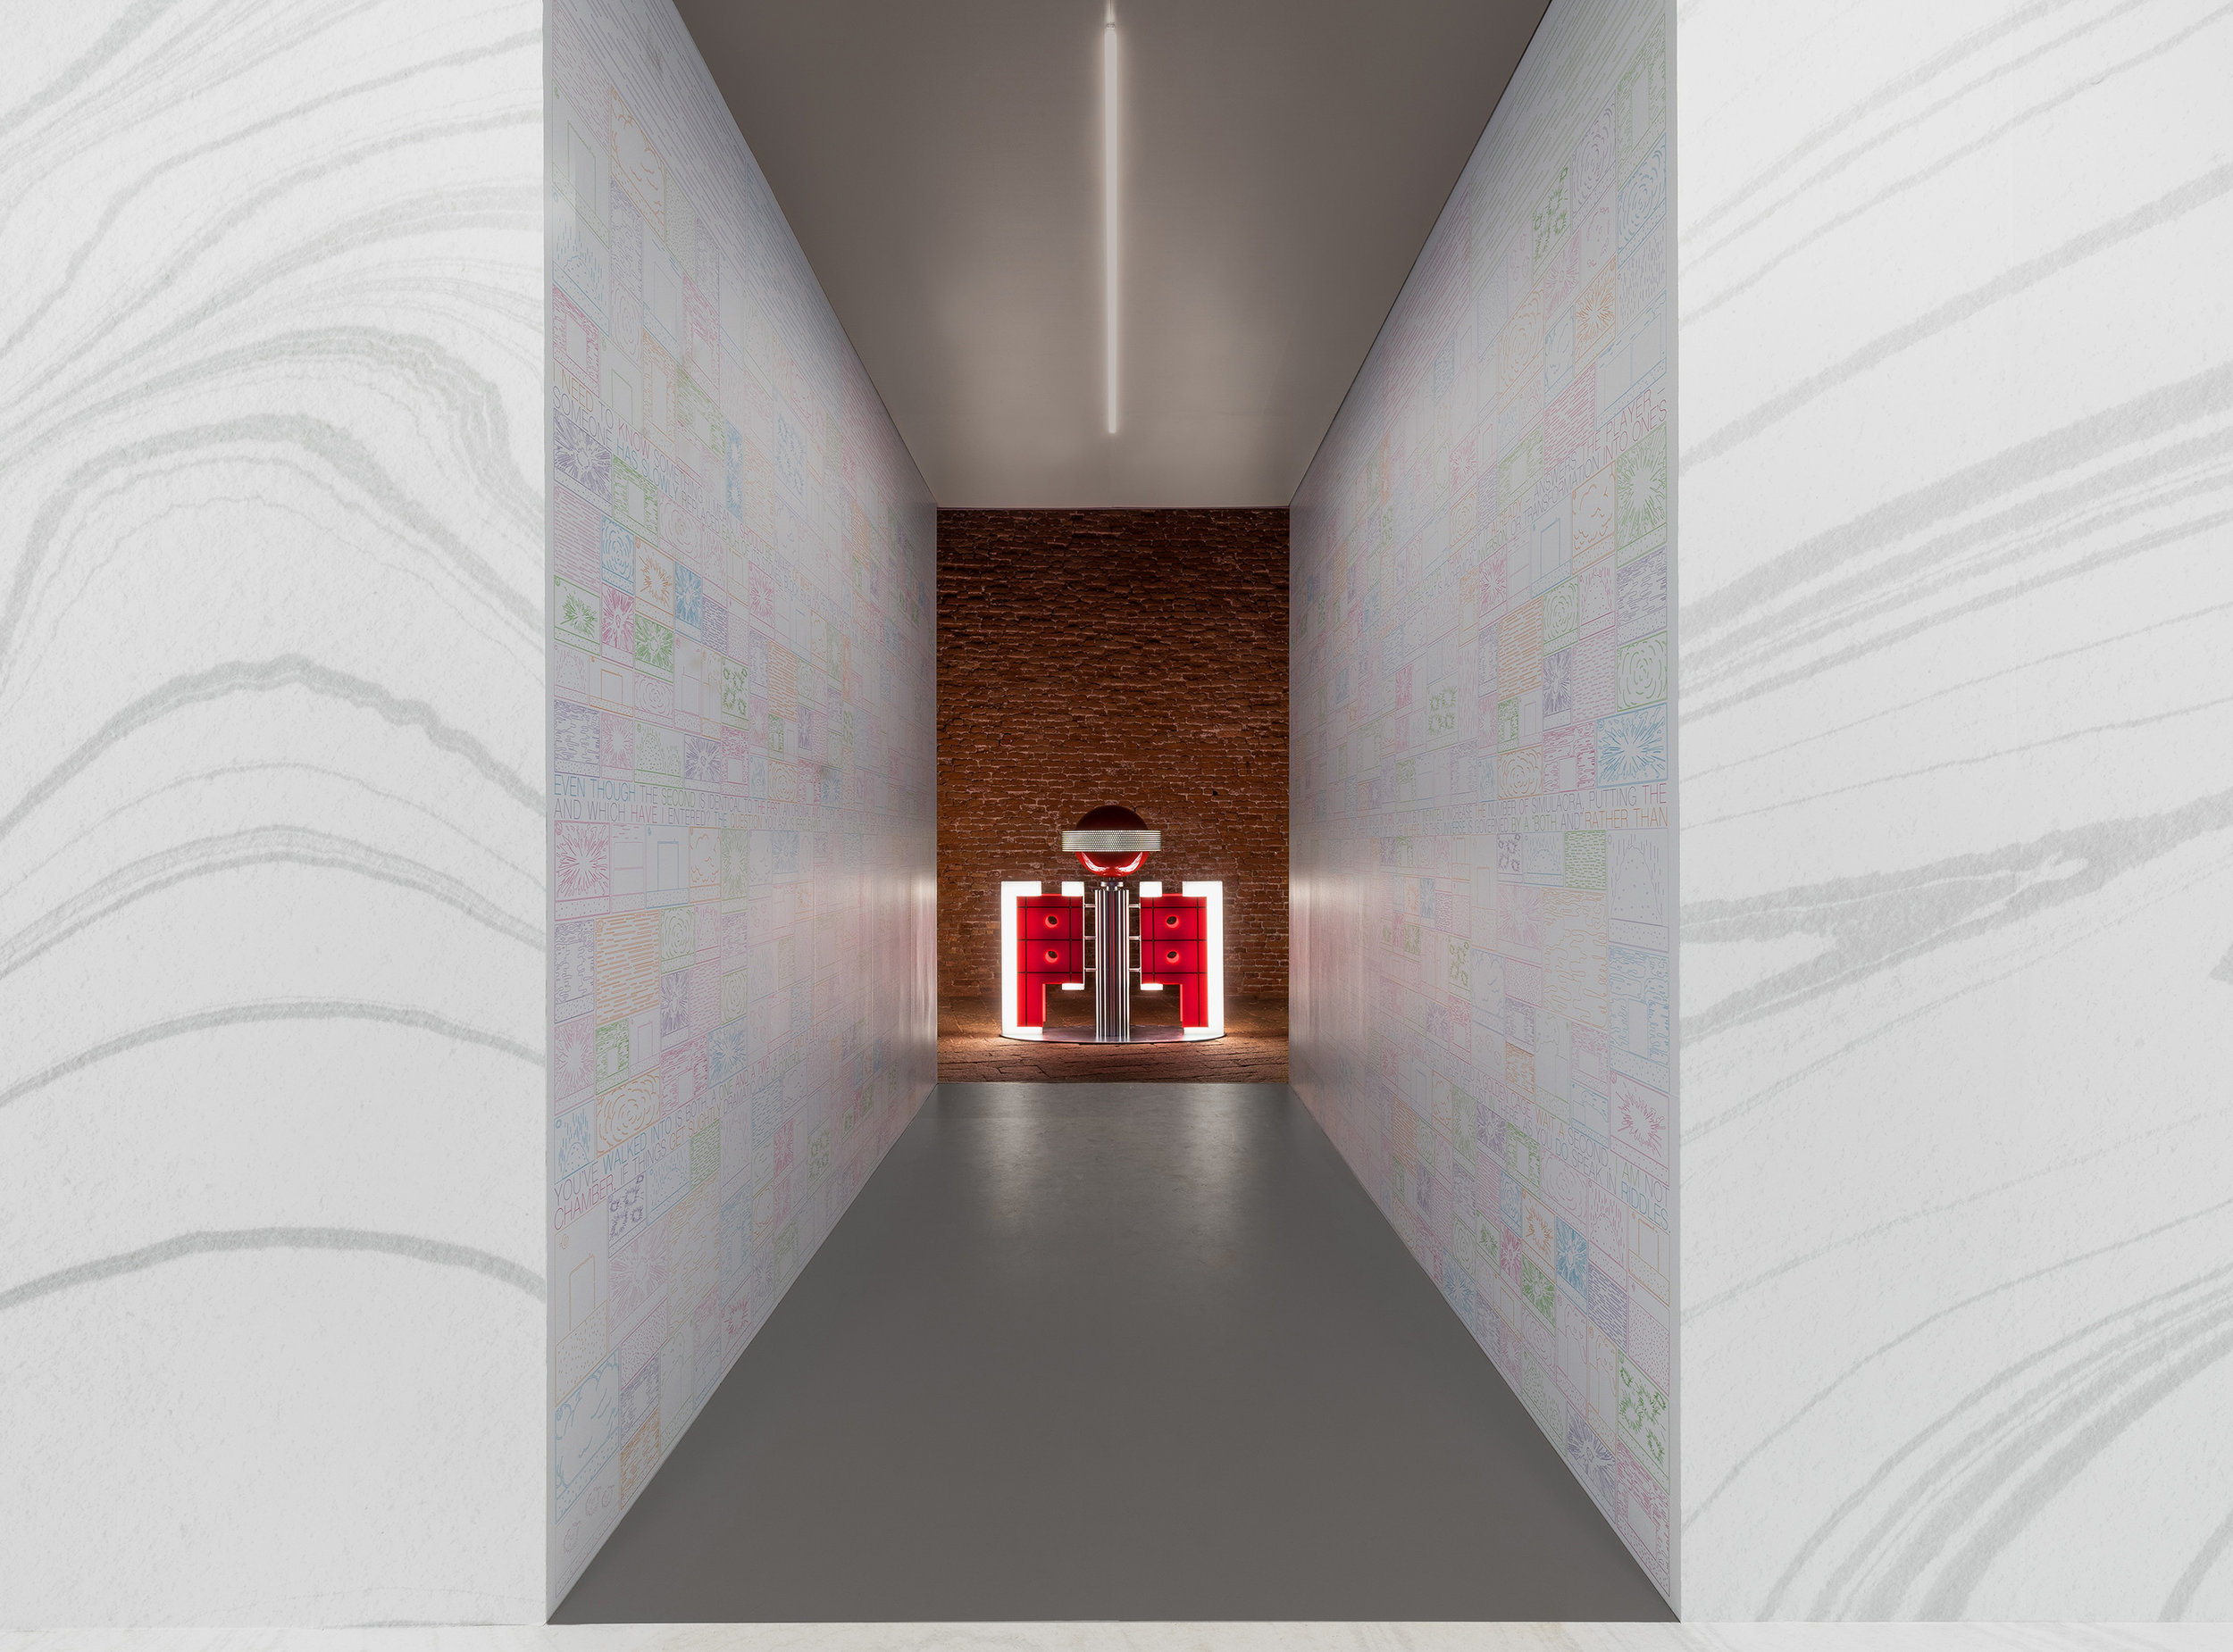 Room 7. A narrow hallway leads visitors out of the exhibition space. Along the walls are cartoon images of a cell exploding. Text by Elena Sorokina lines the walls in two horizontal bands.